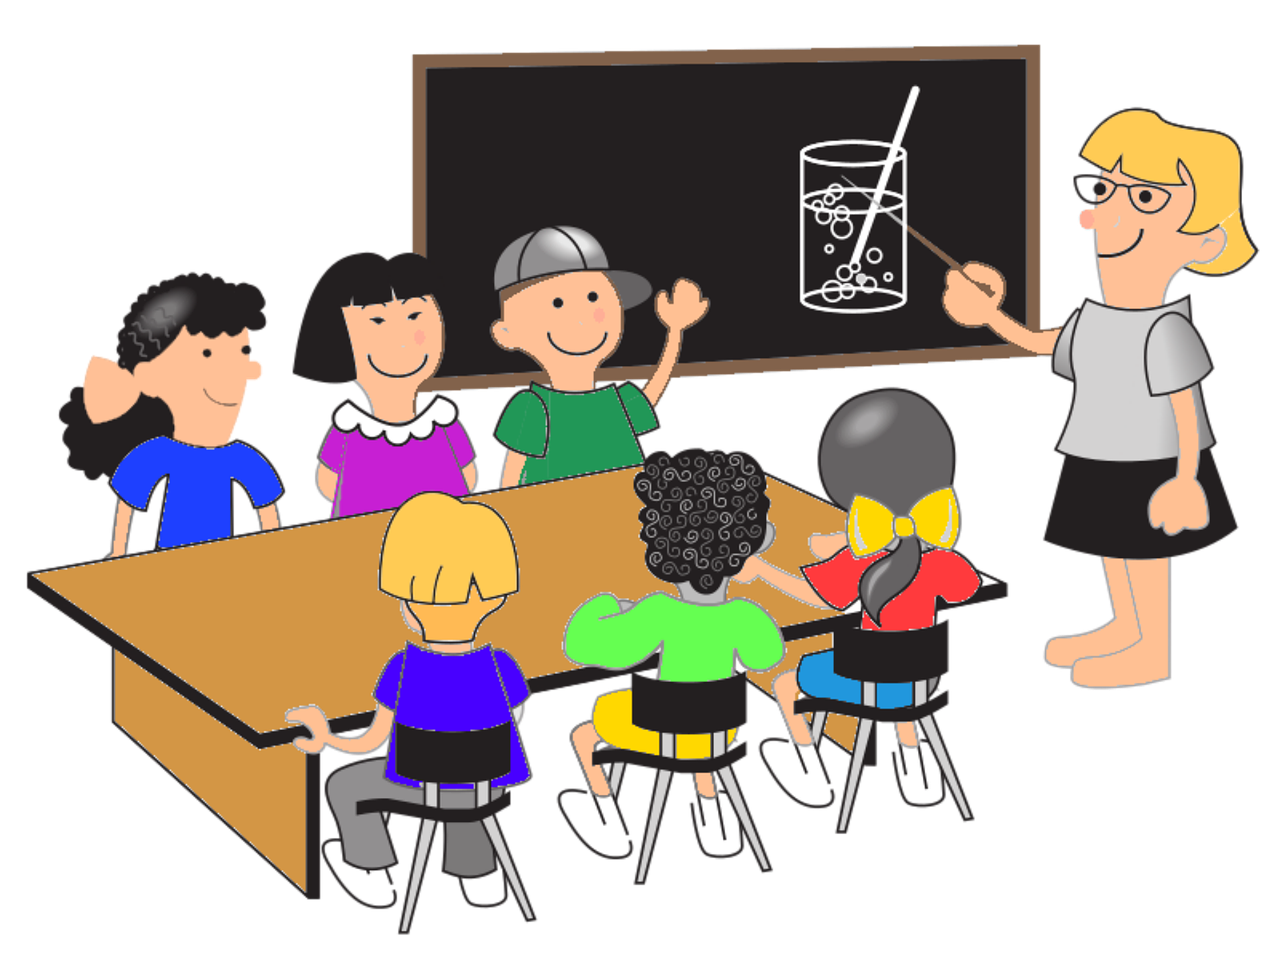 Conference clipart group counseling. Behavioral techniques for children